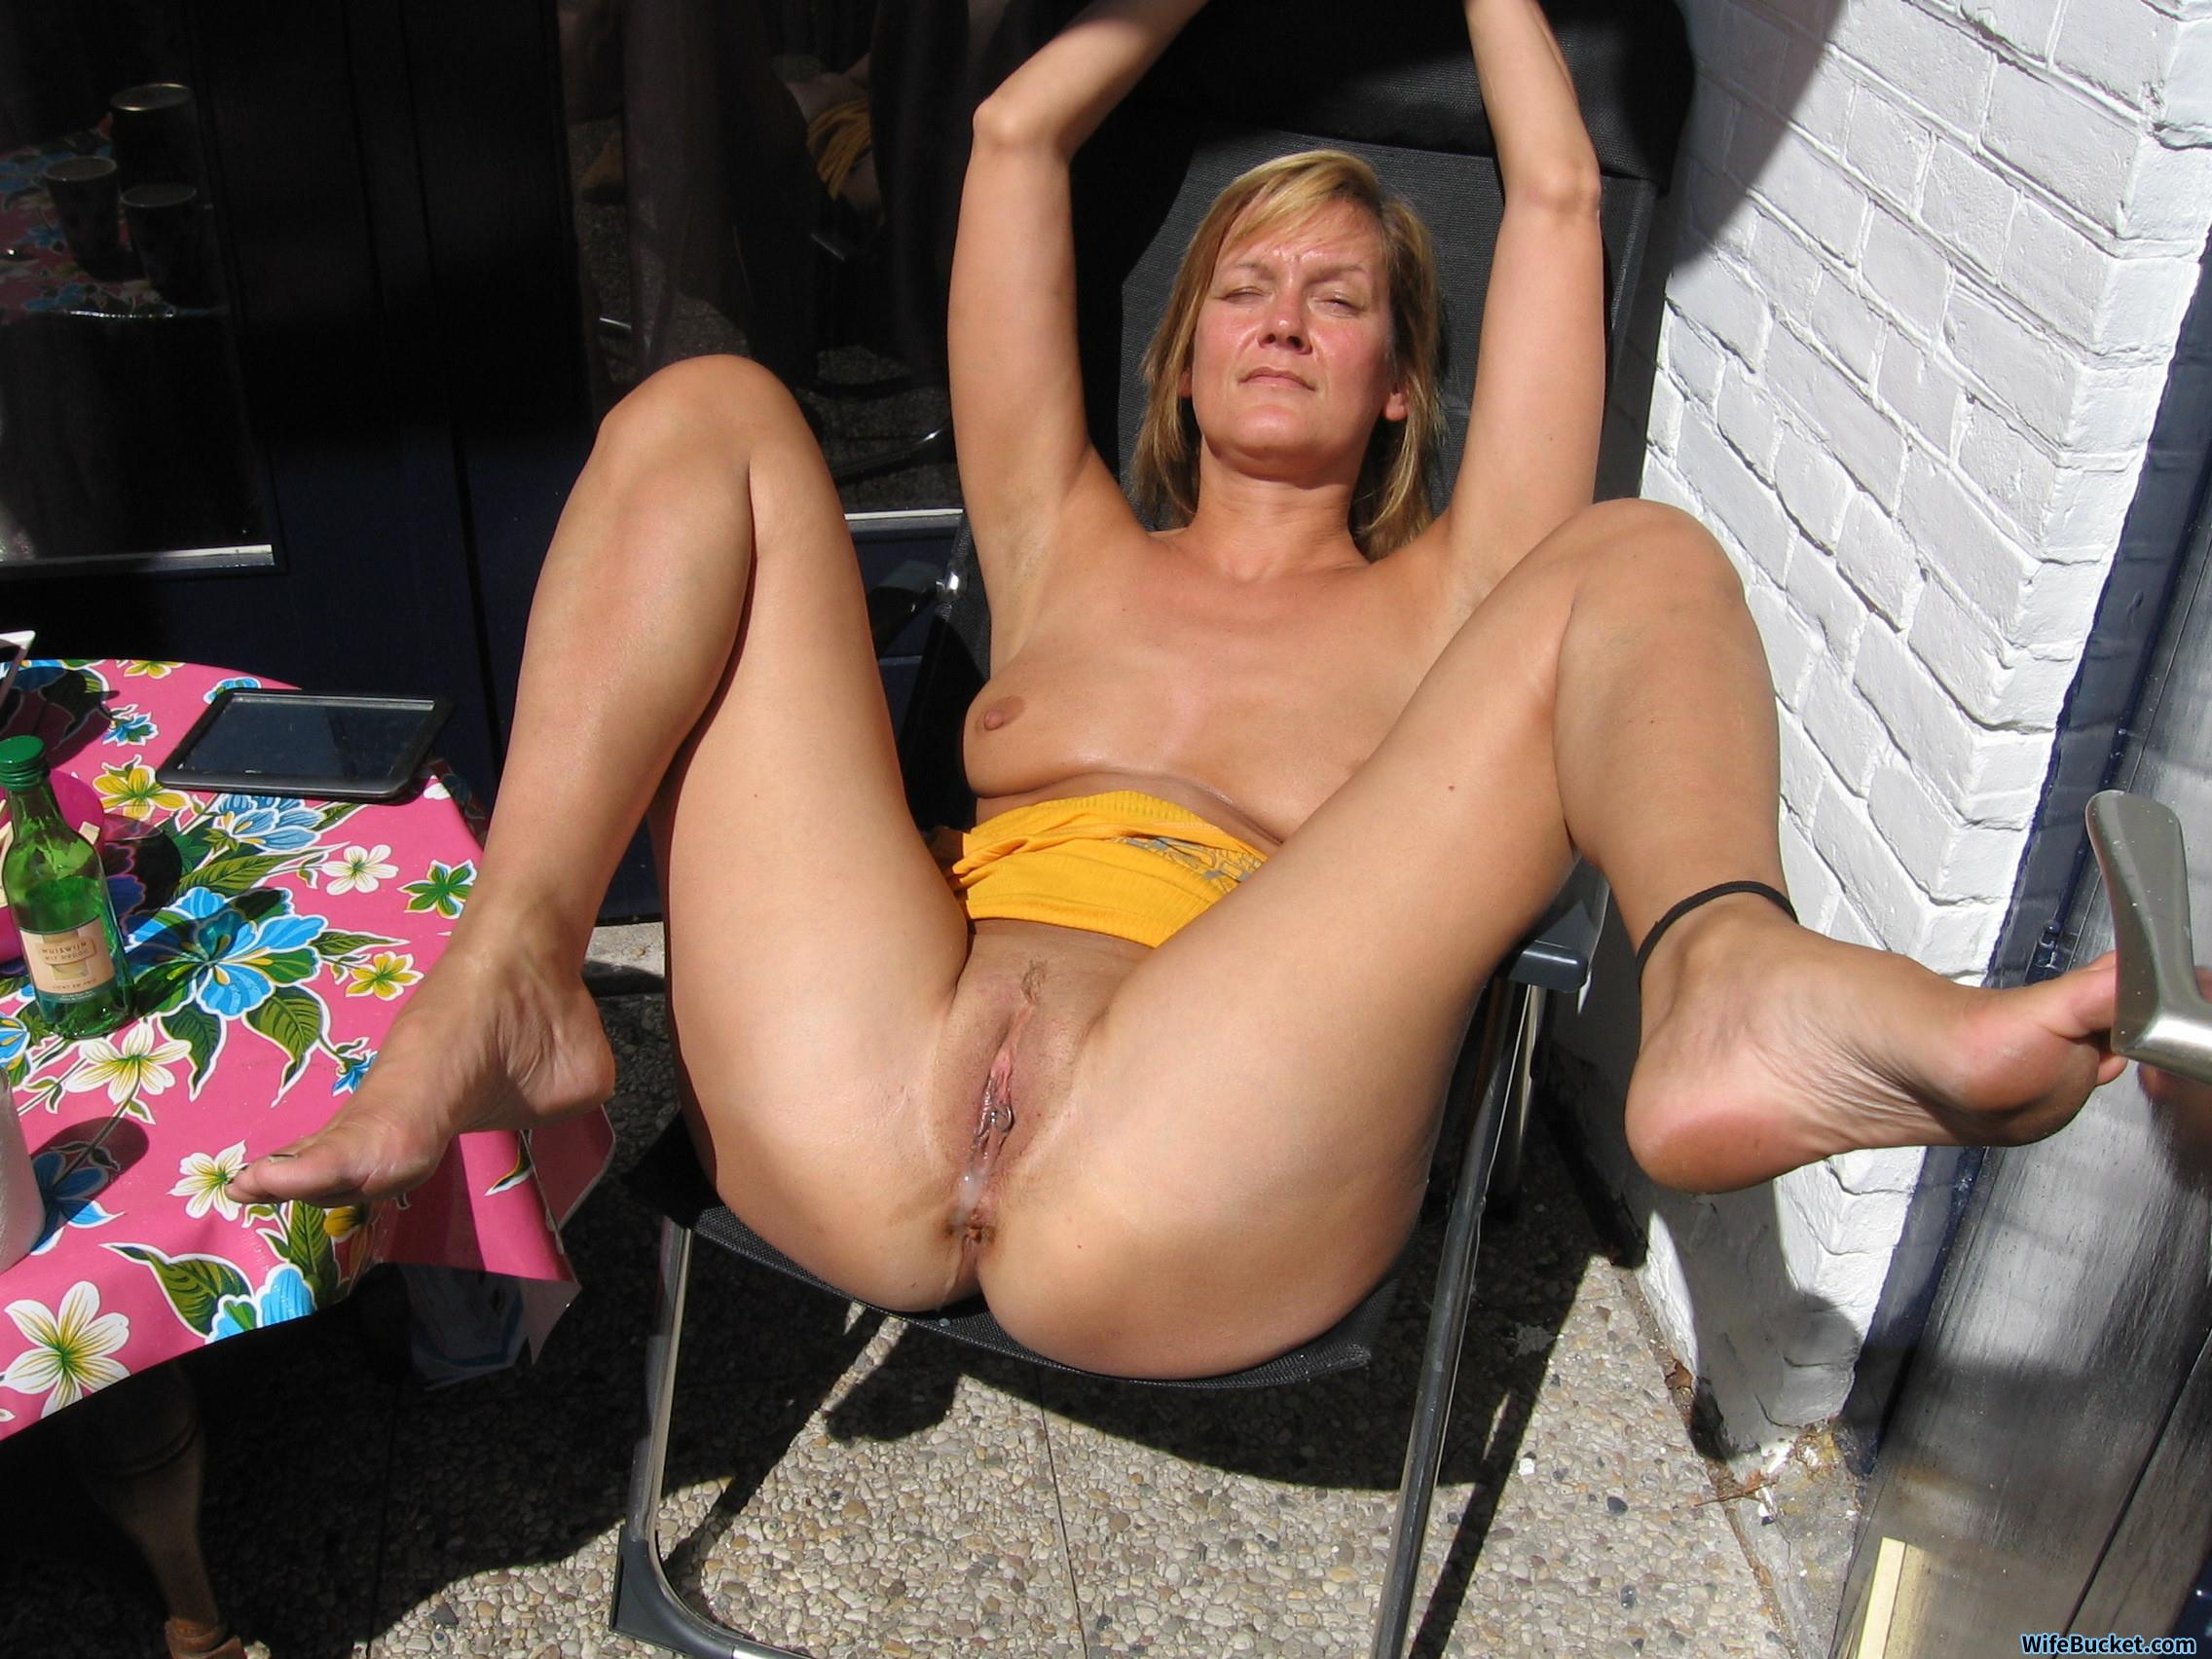 real threesomes Archives | WifeBucket | Offical MILF Blog